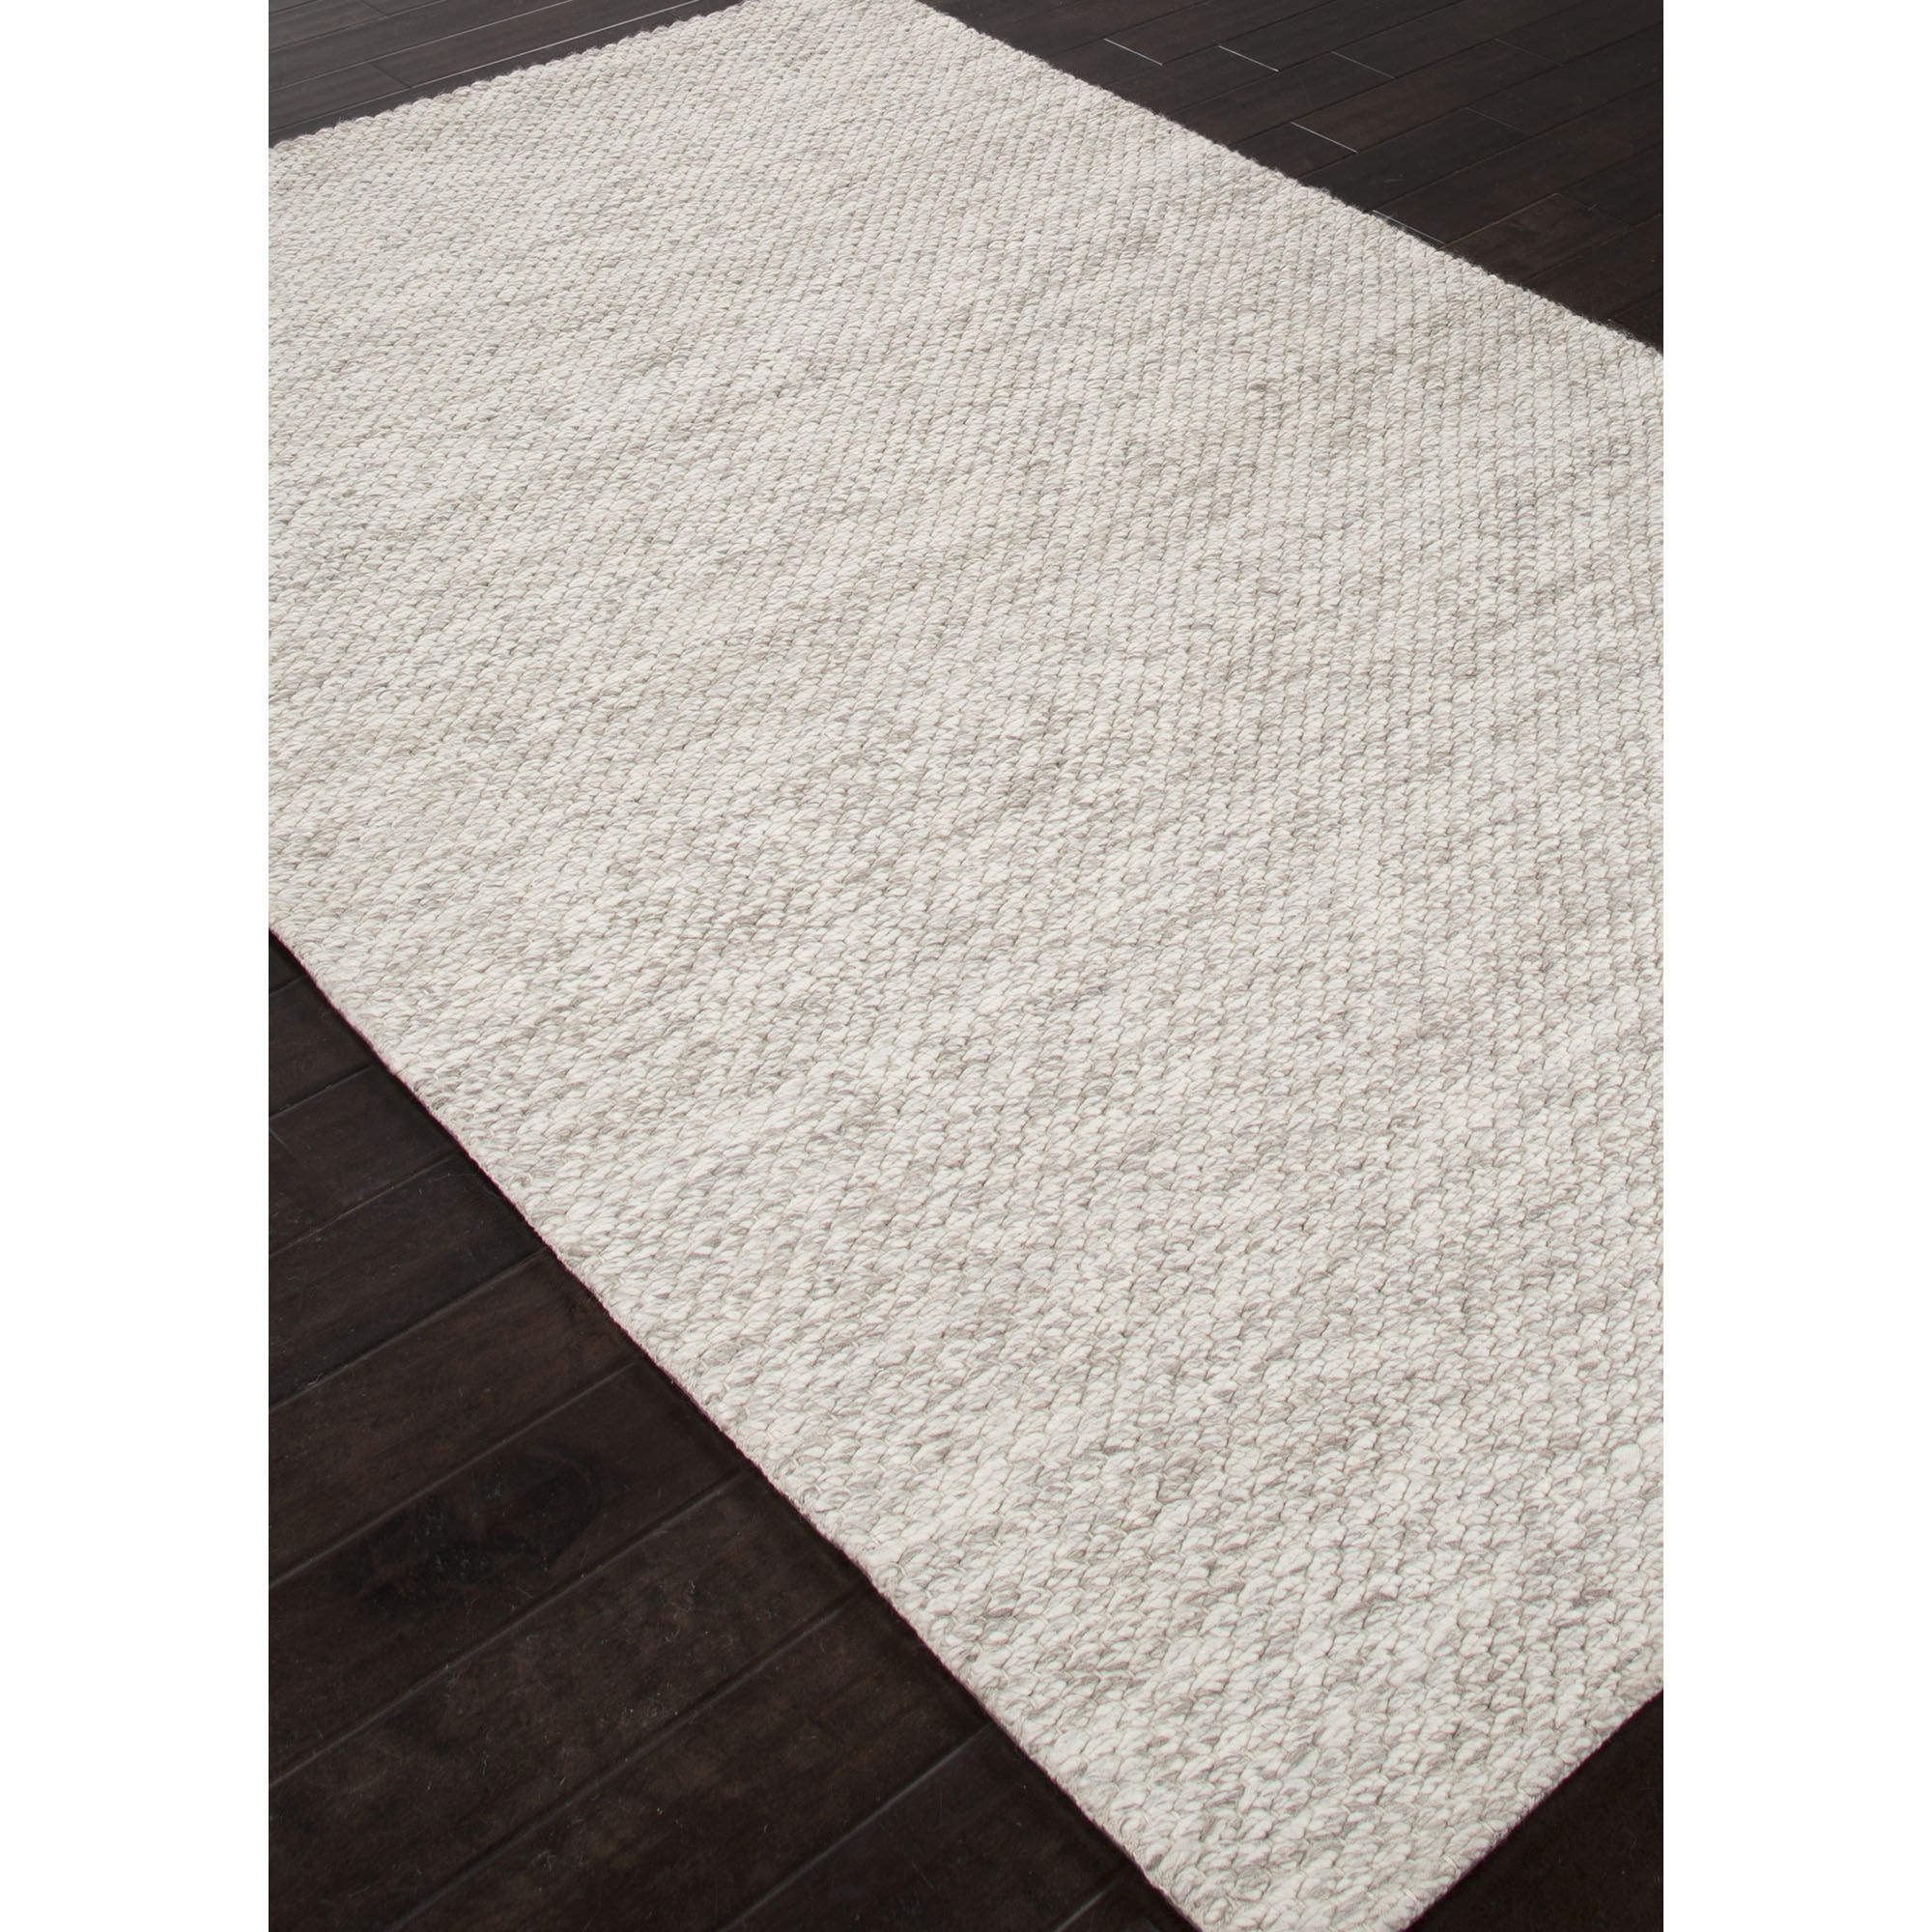 Rugs Wool Area Rugs 8×10 Area Rugs 8×10 Clearance 8×10 Area Rug Within Natural Wool Area Rugs (#9 of 15)